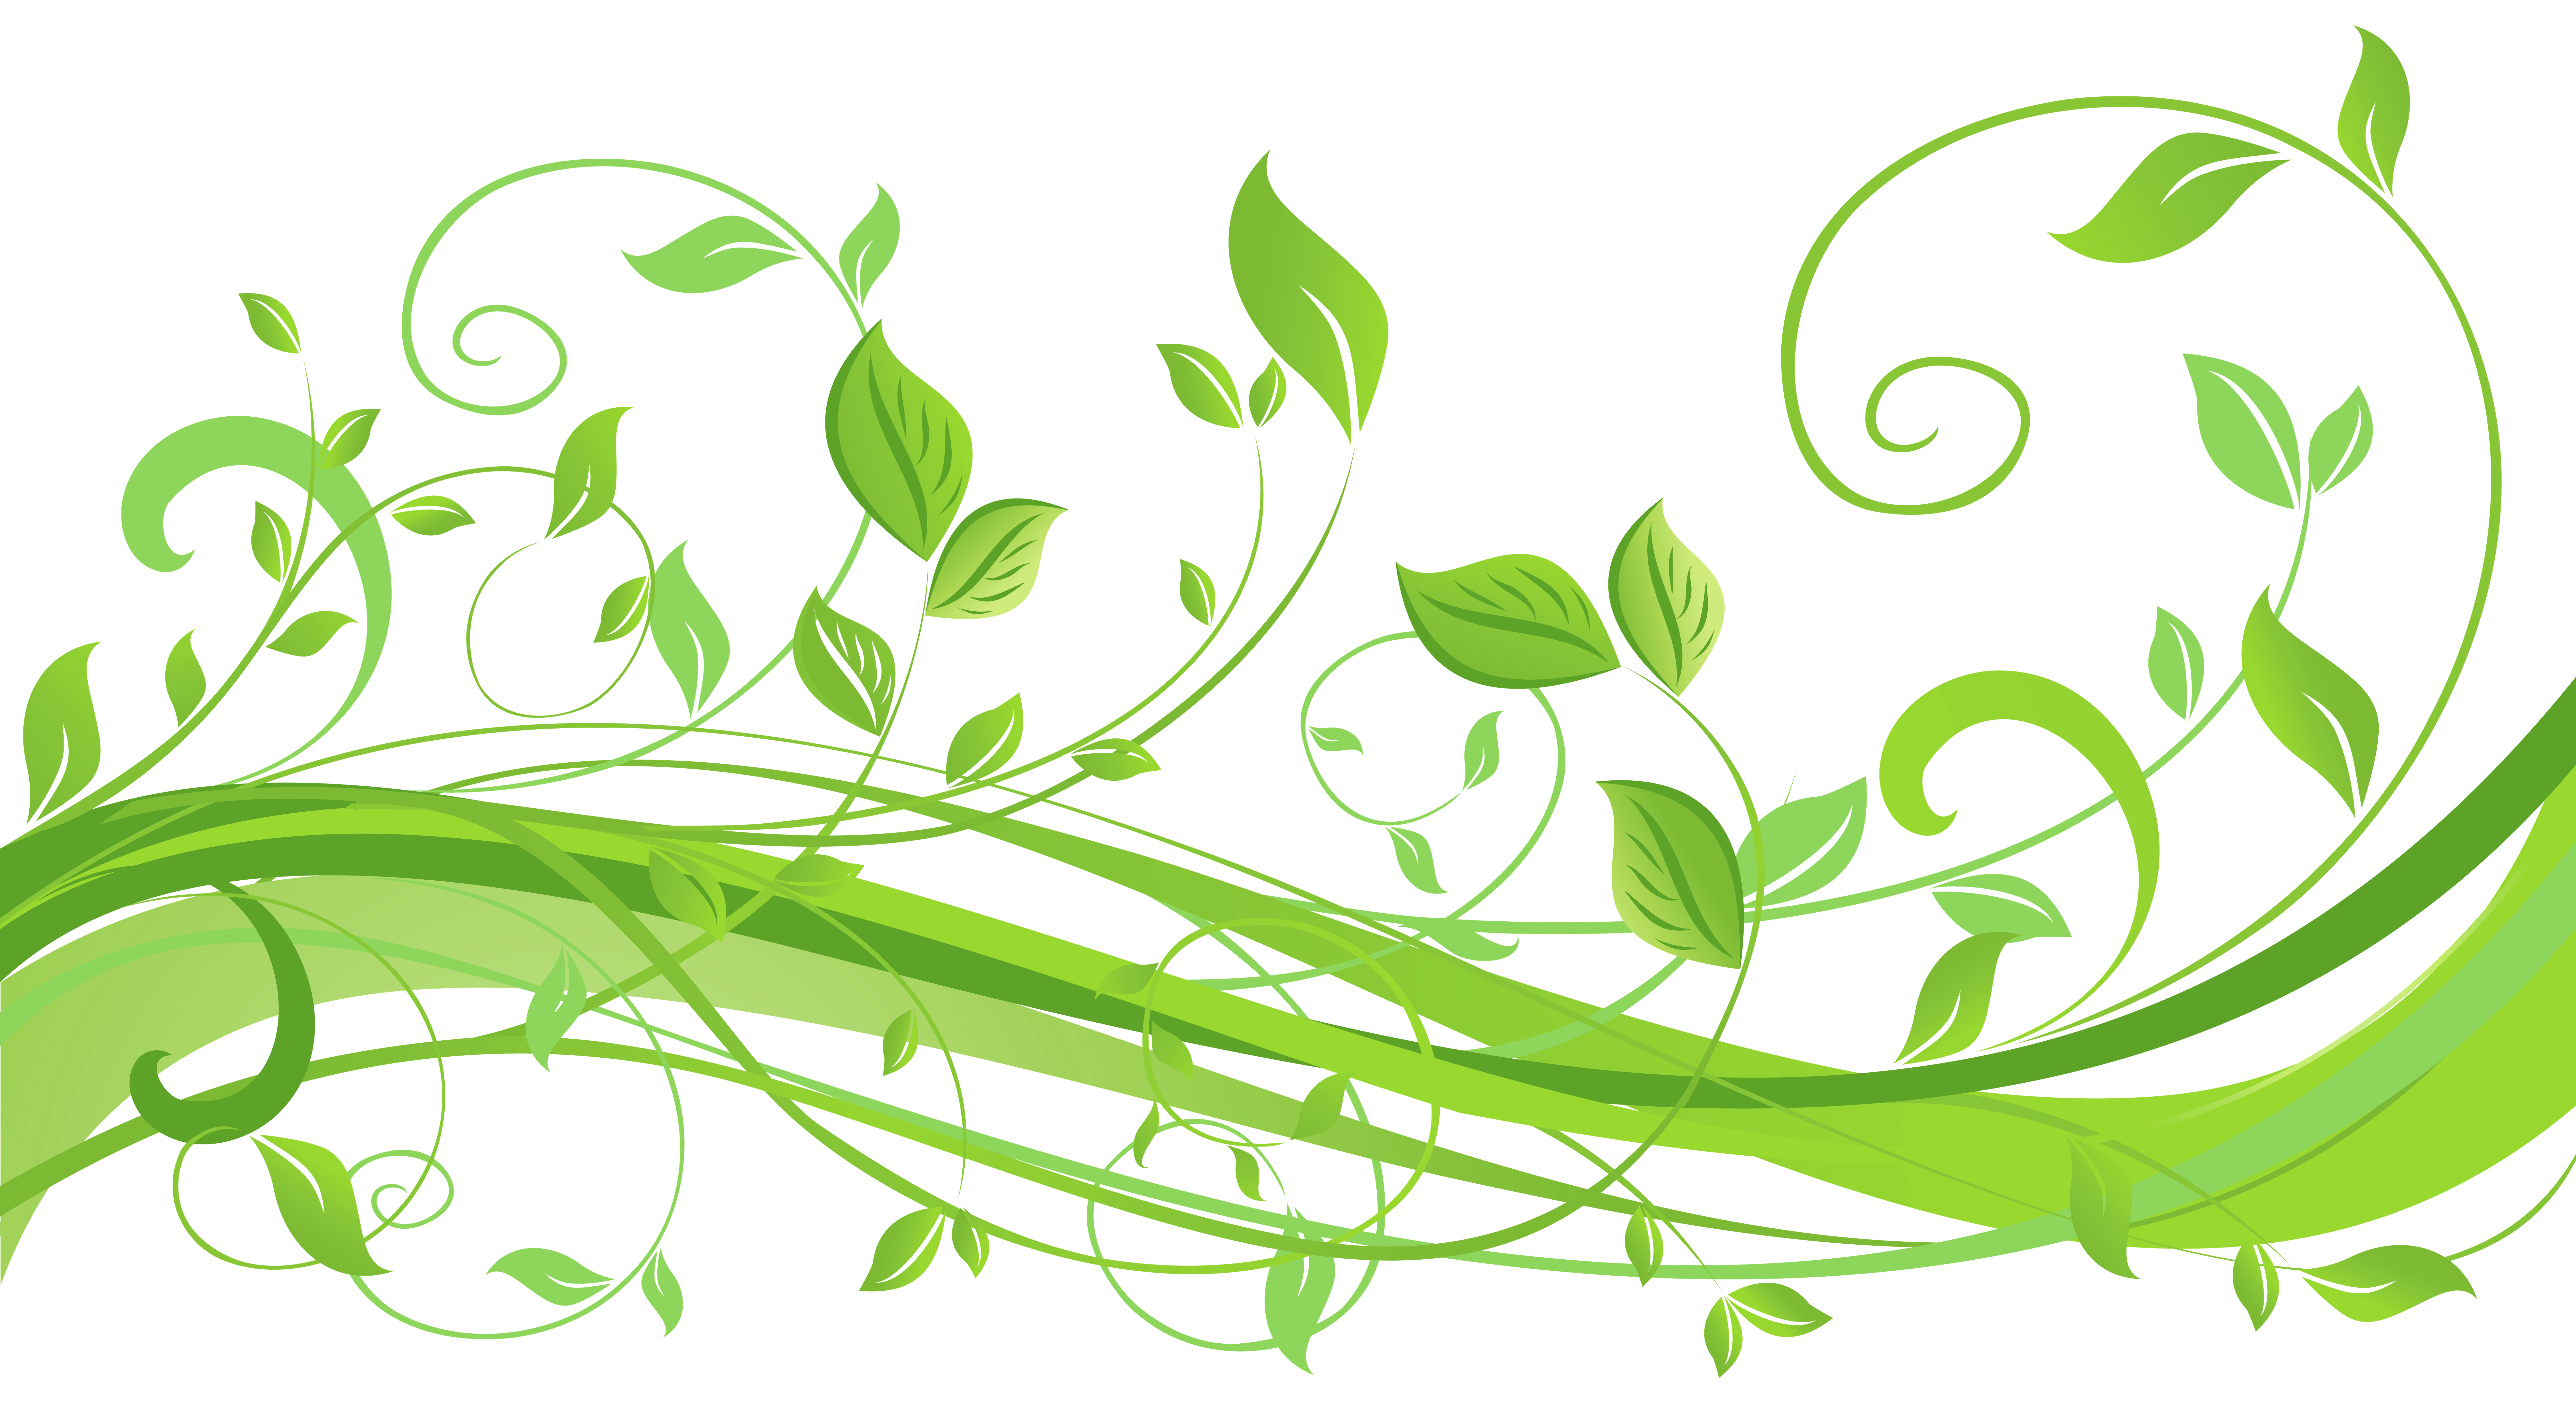 Green decorative clipart graphic free library Spring Decoration with Leaves Transparent PNG Clip Art Image ... graphic free library